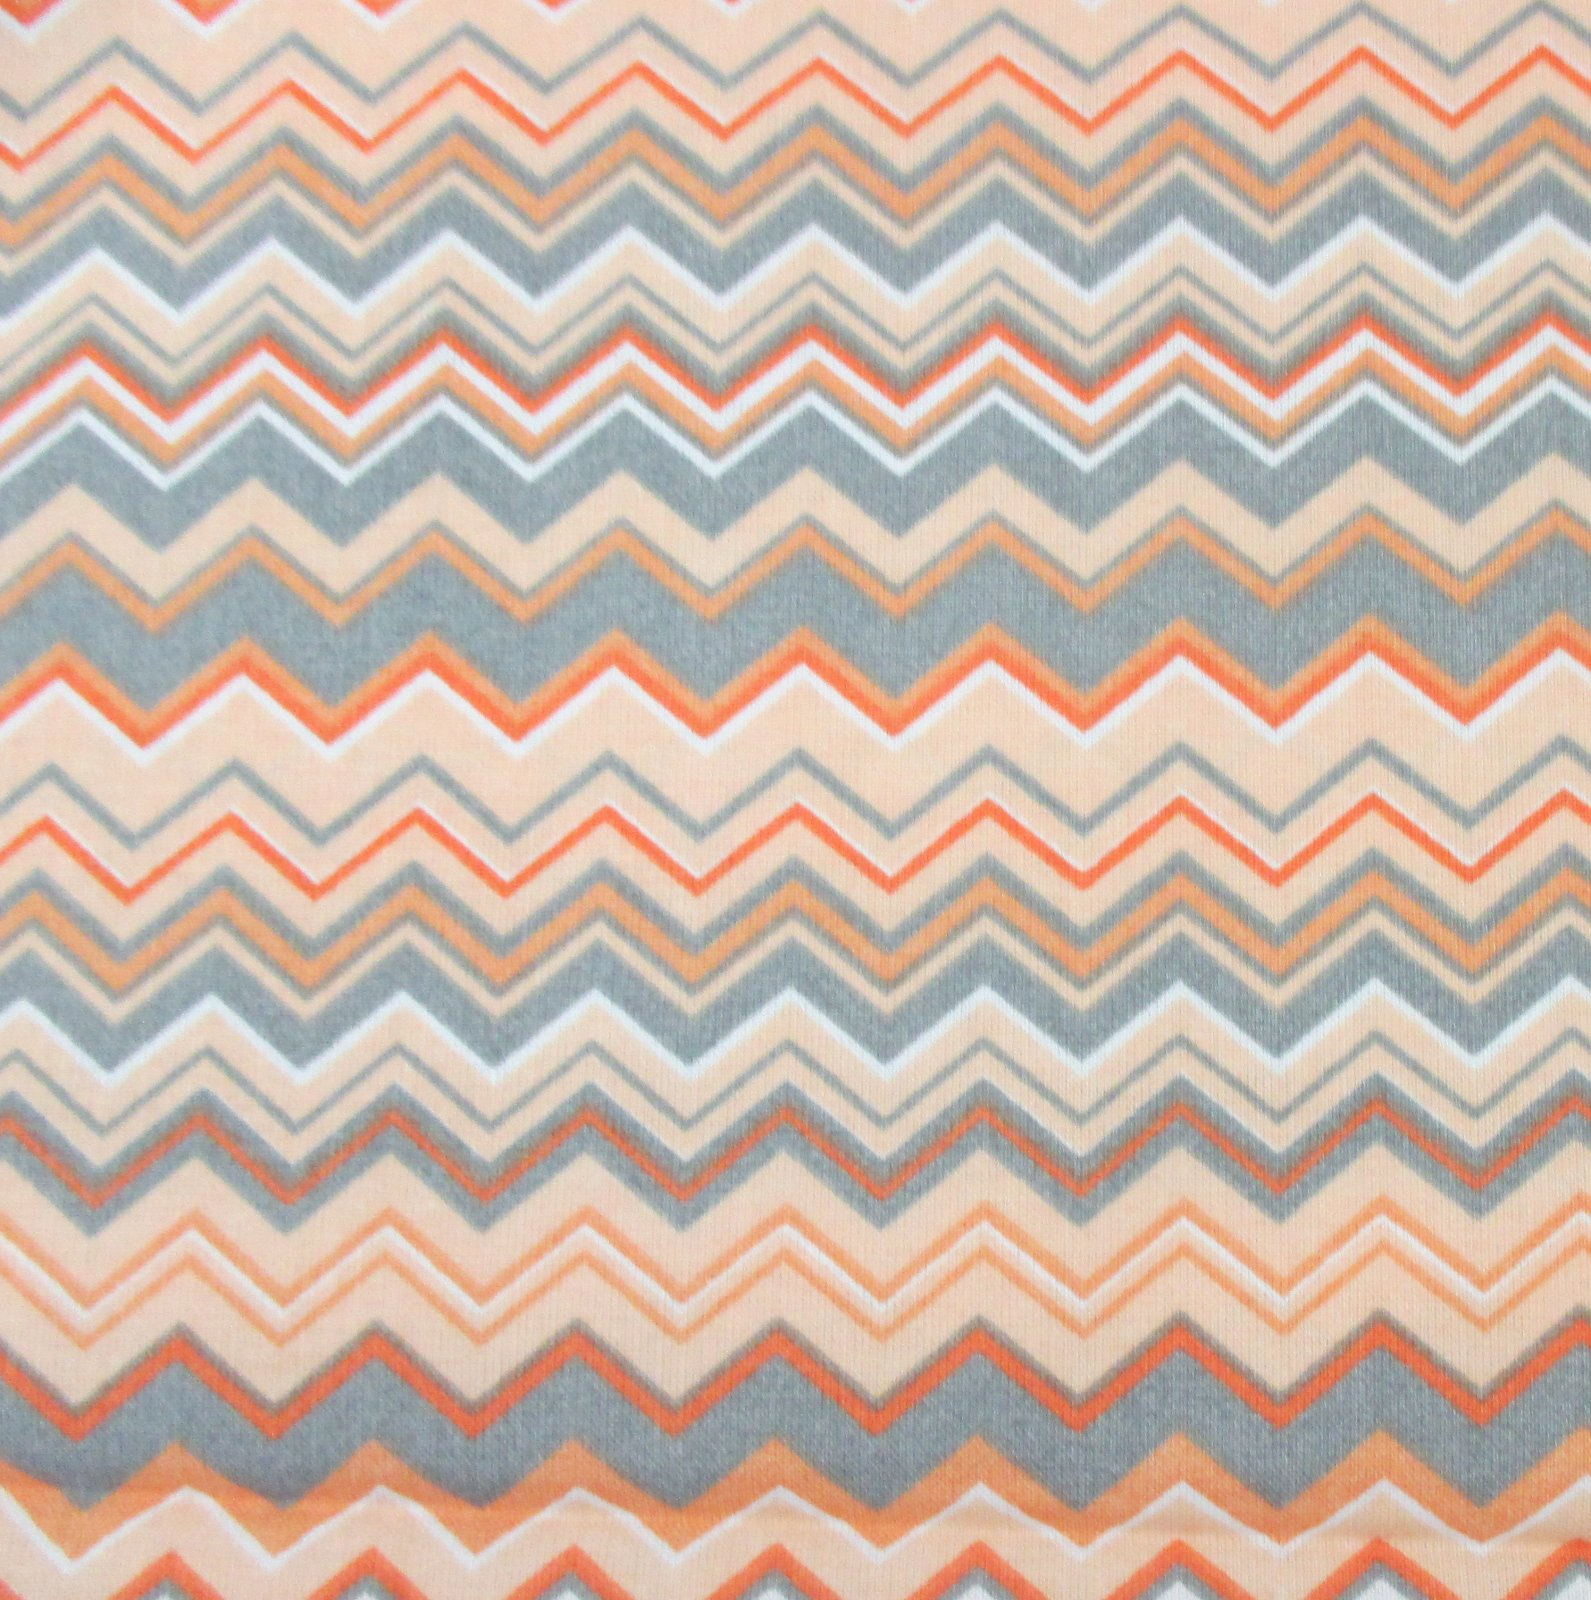 A.E. Nathan - Chevron - Orange/Gray/White